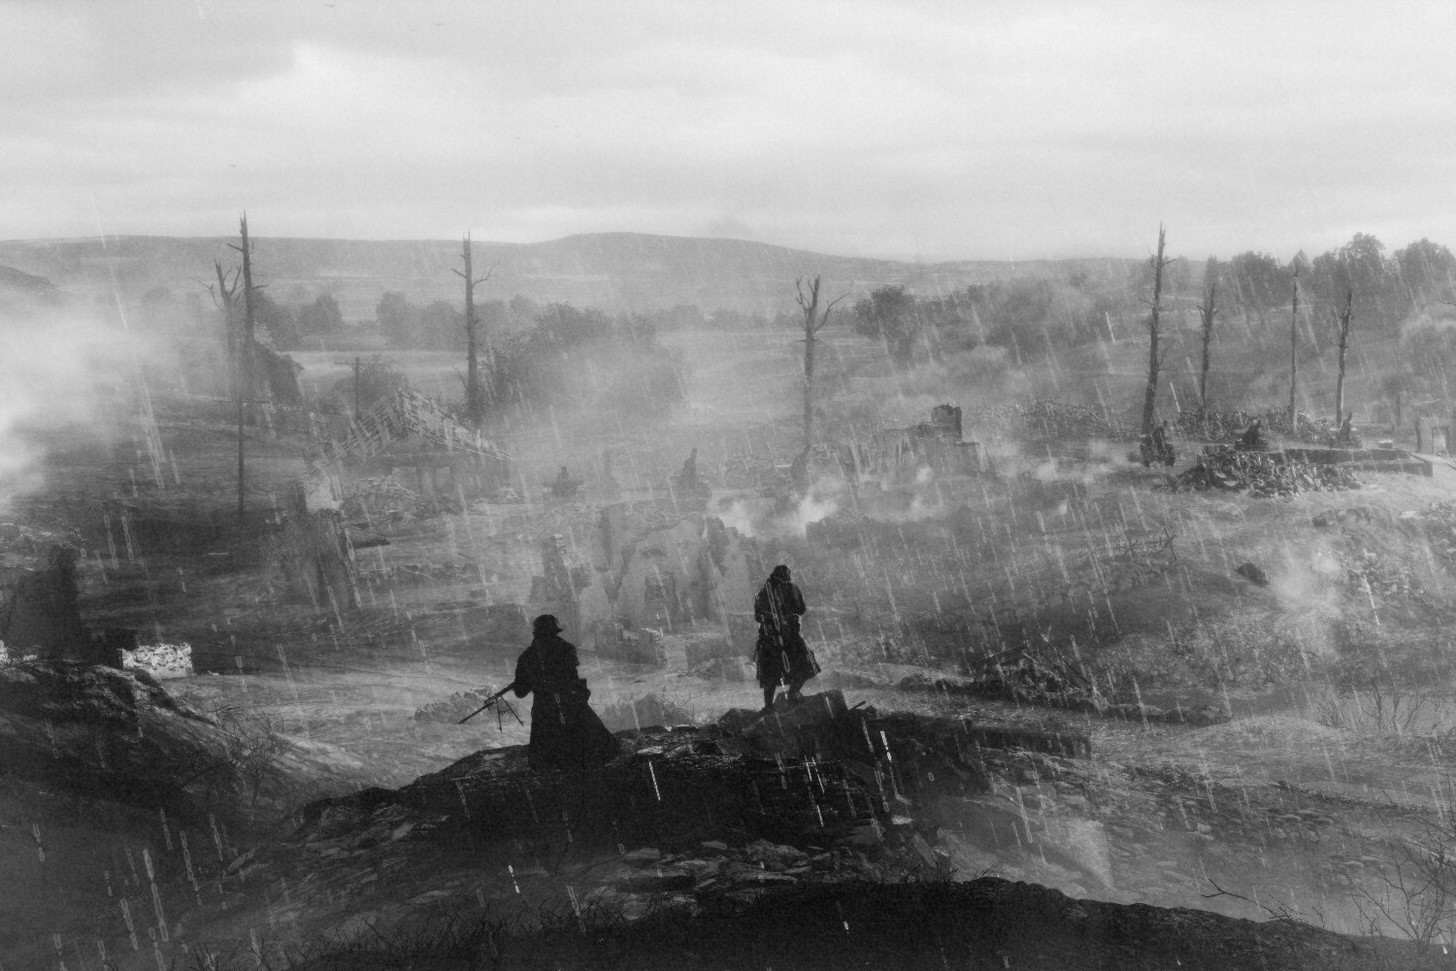 Battlefield 1 Screens Look Hauntingly Realistic With Black & White Filter twswbPer